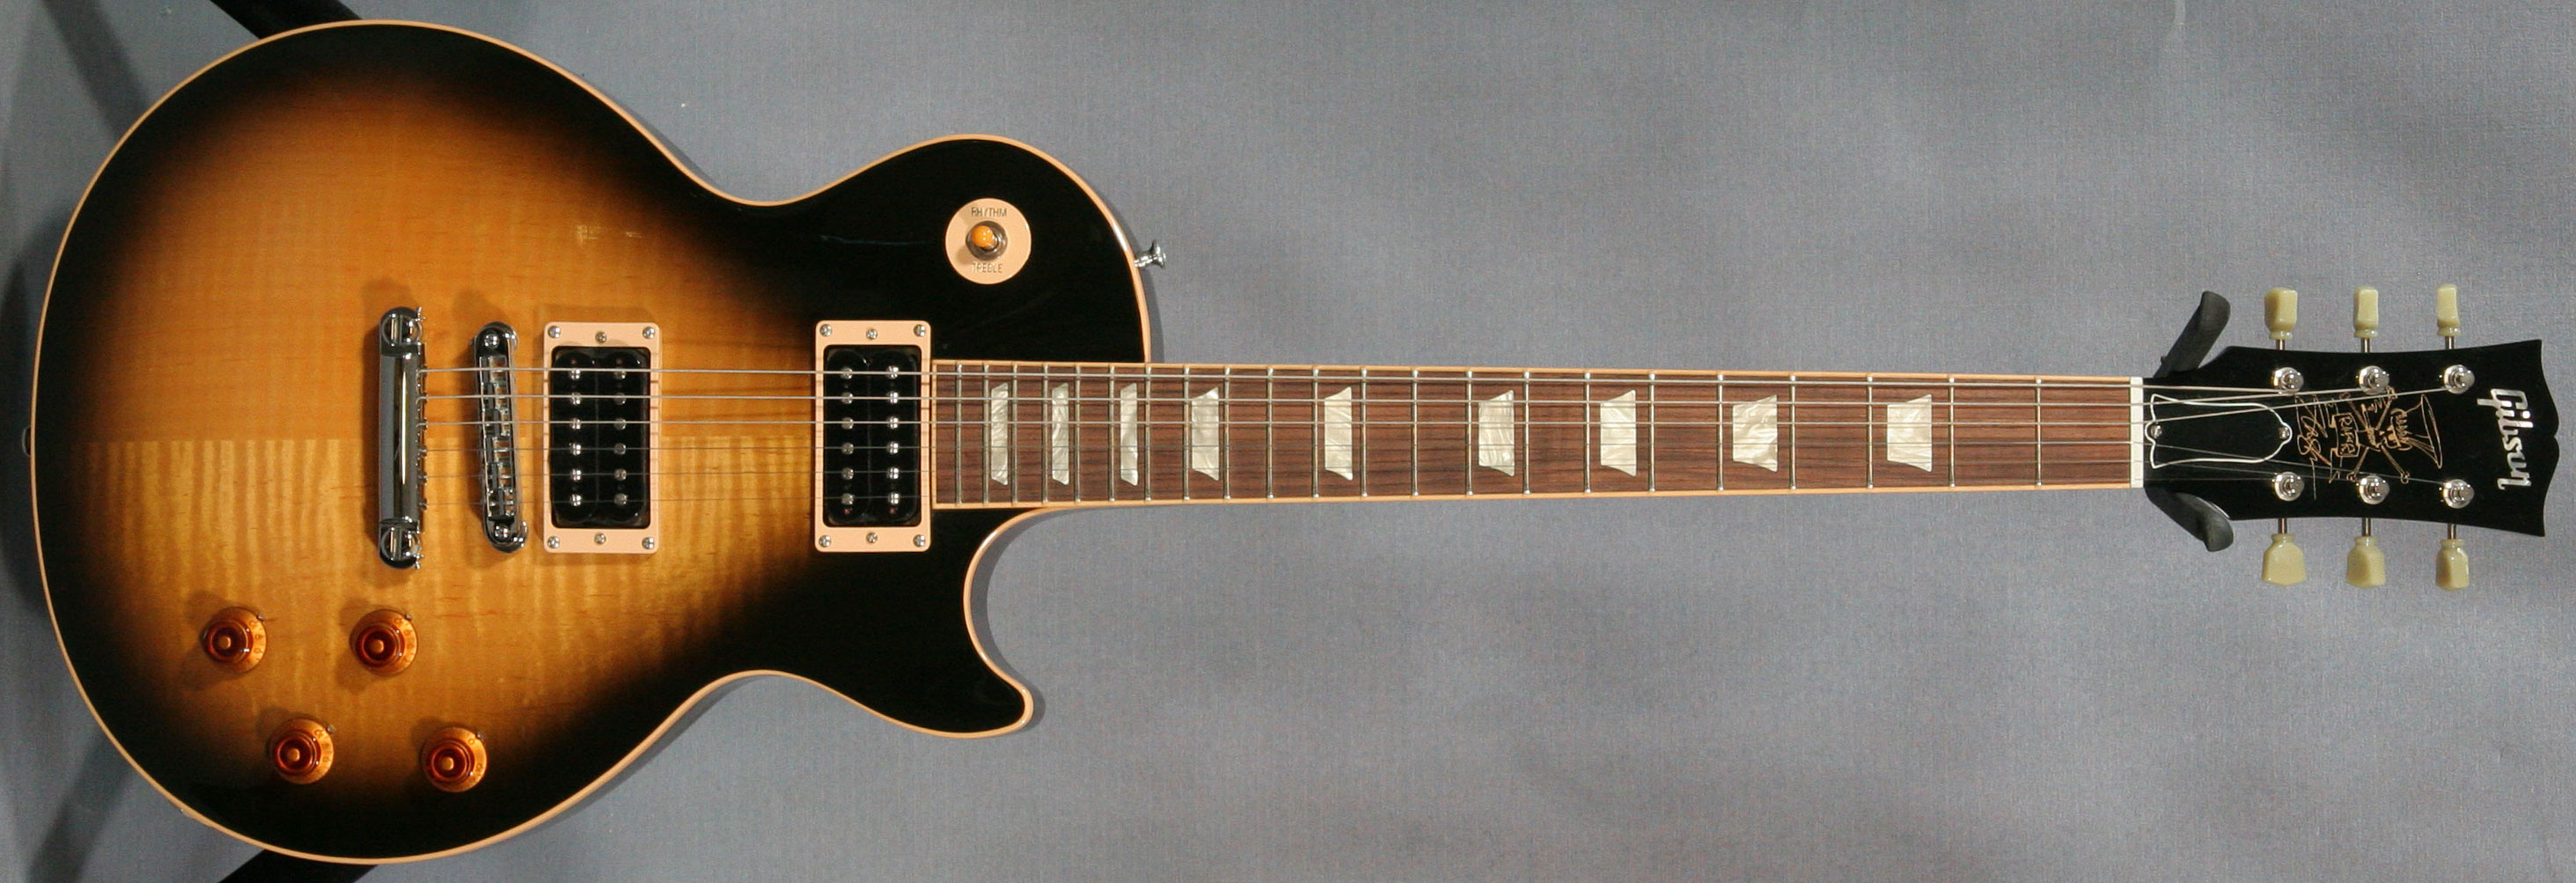 slash-les-paul.jpg